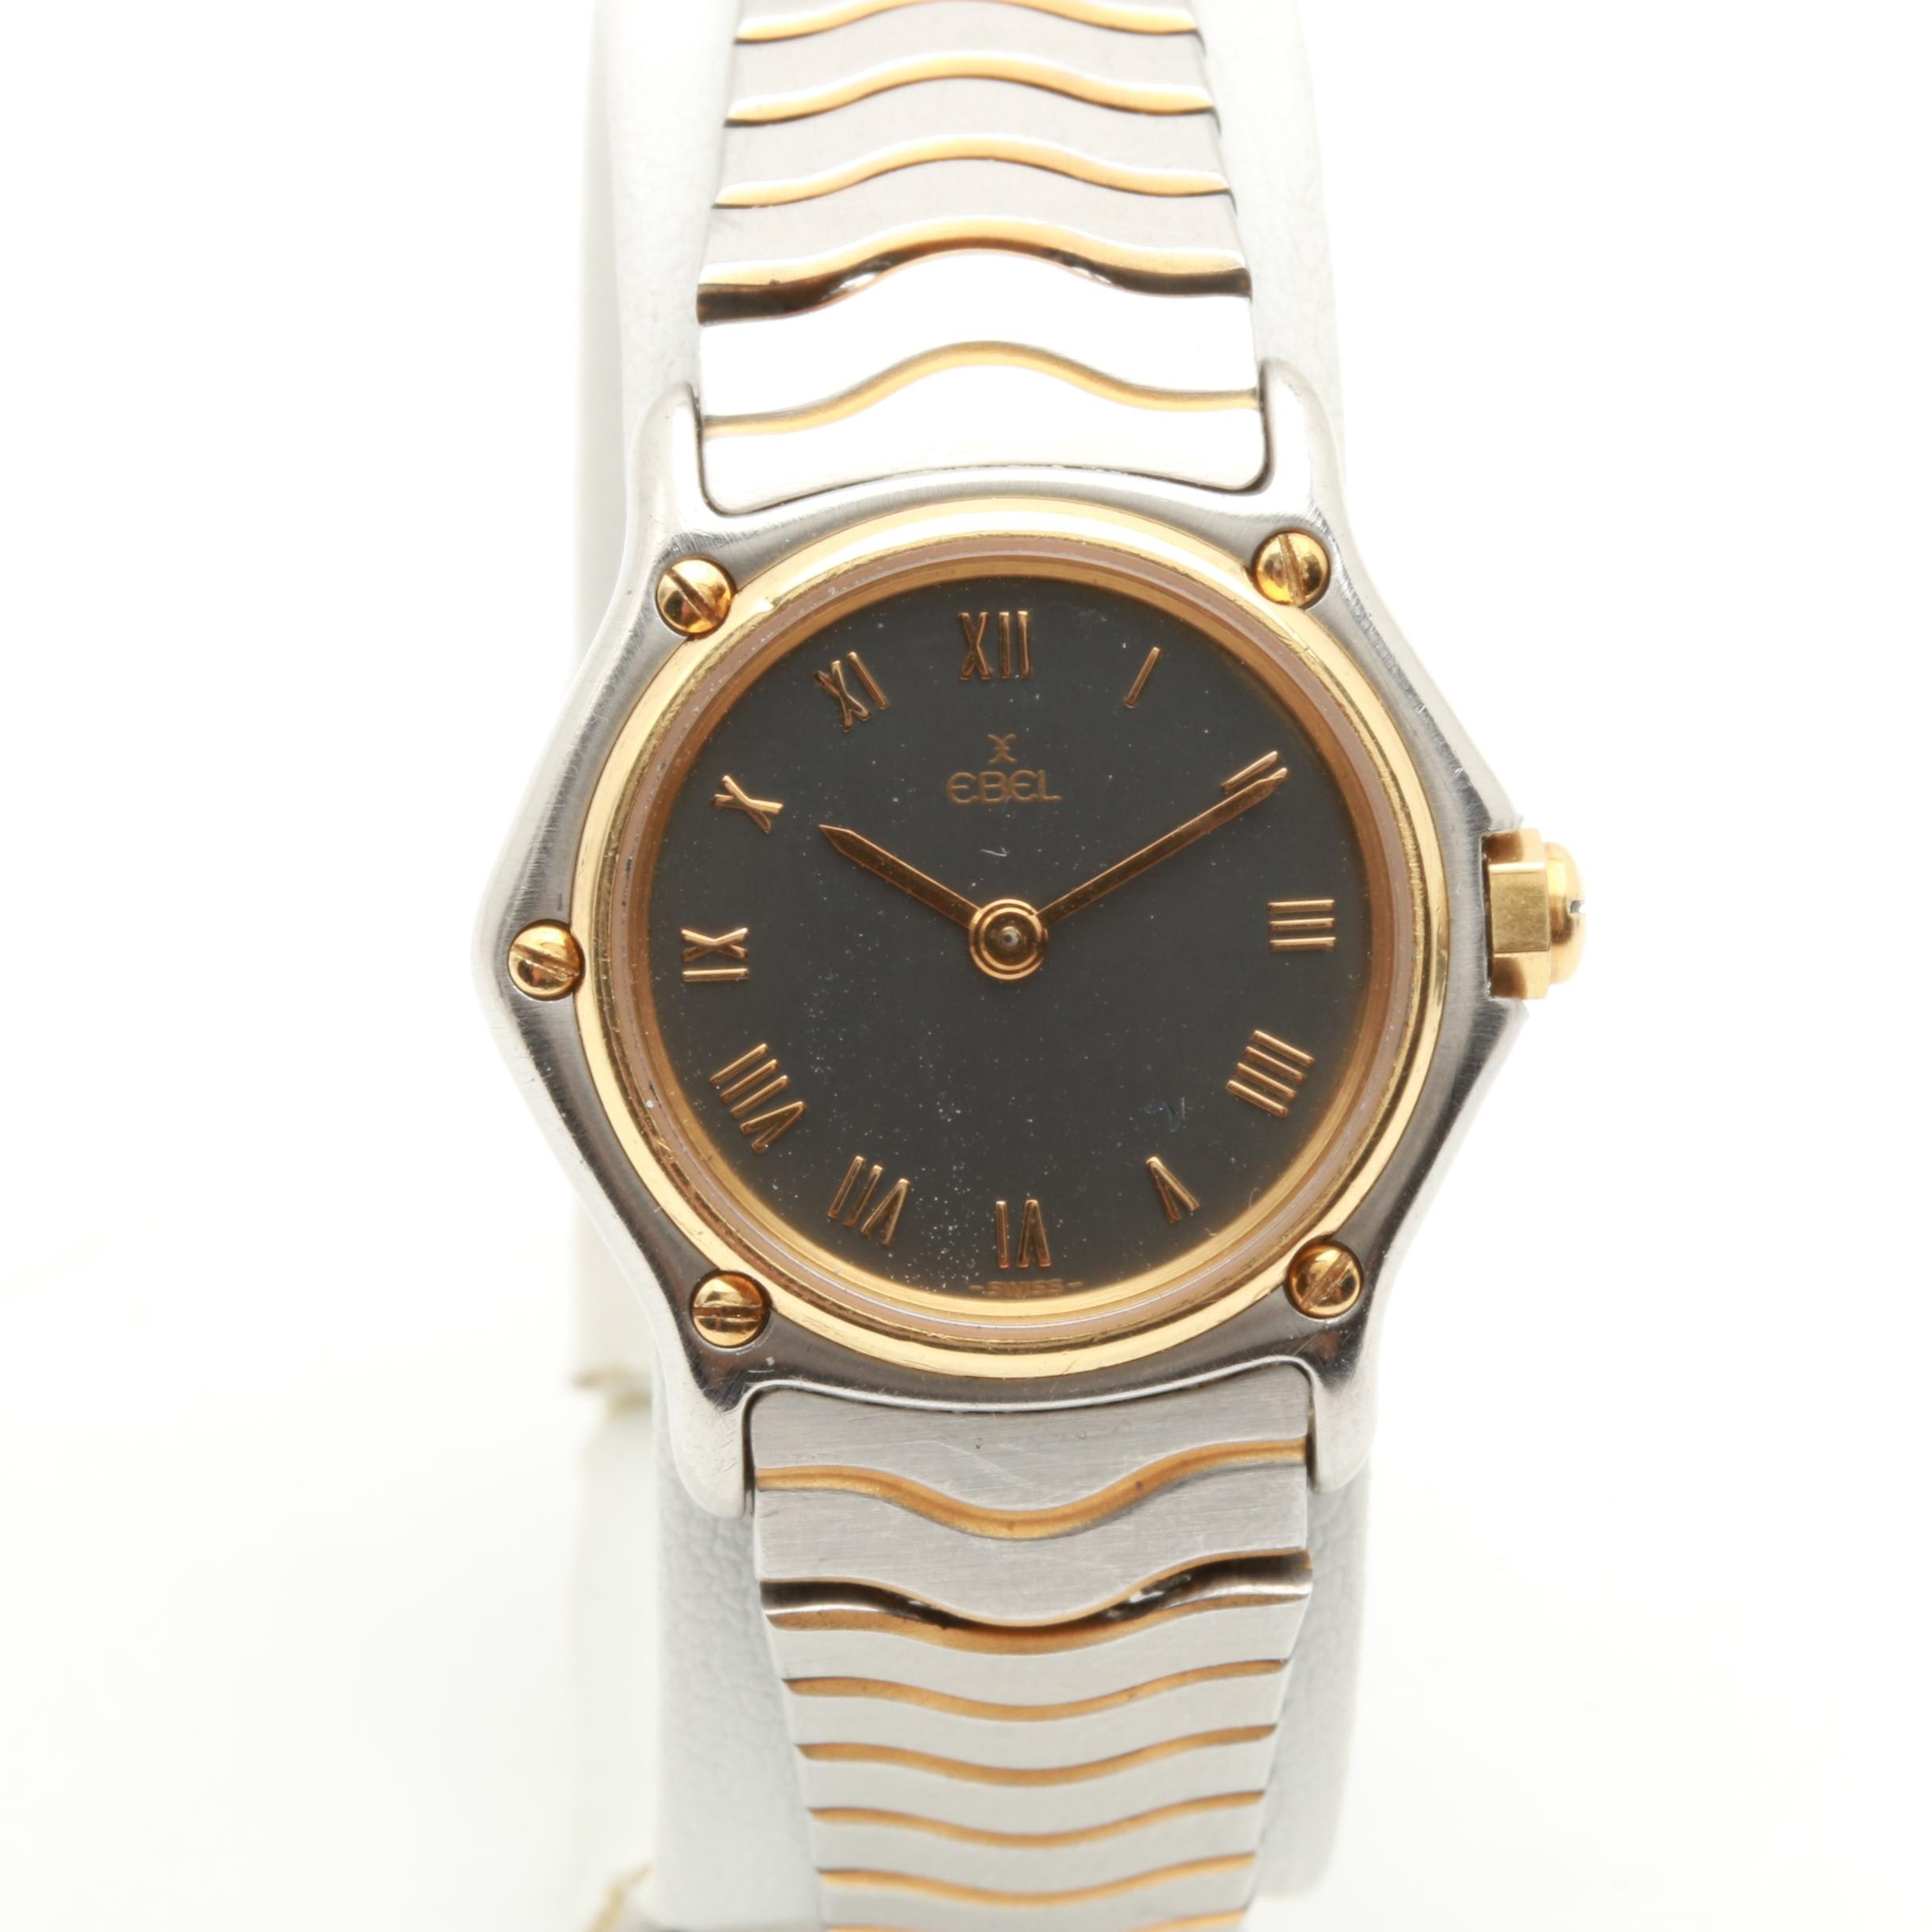 Ebel Wave Stainless Steel Wristwatch with 18K Yellow Gold Accents